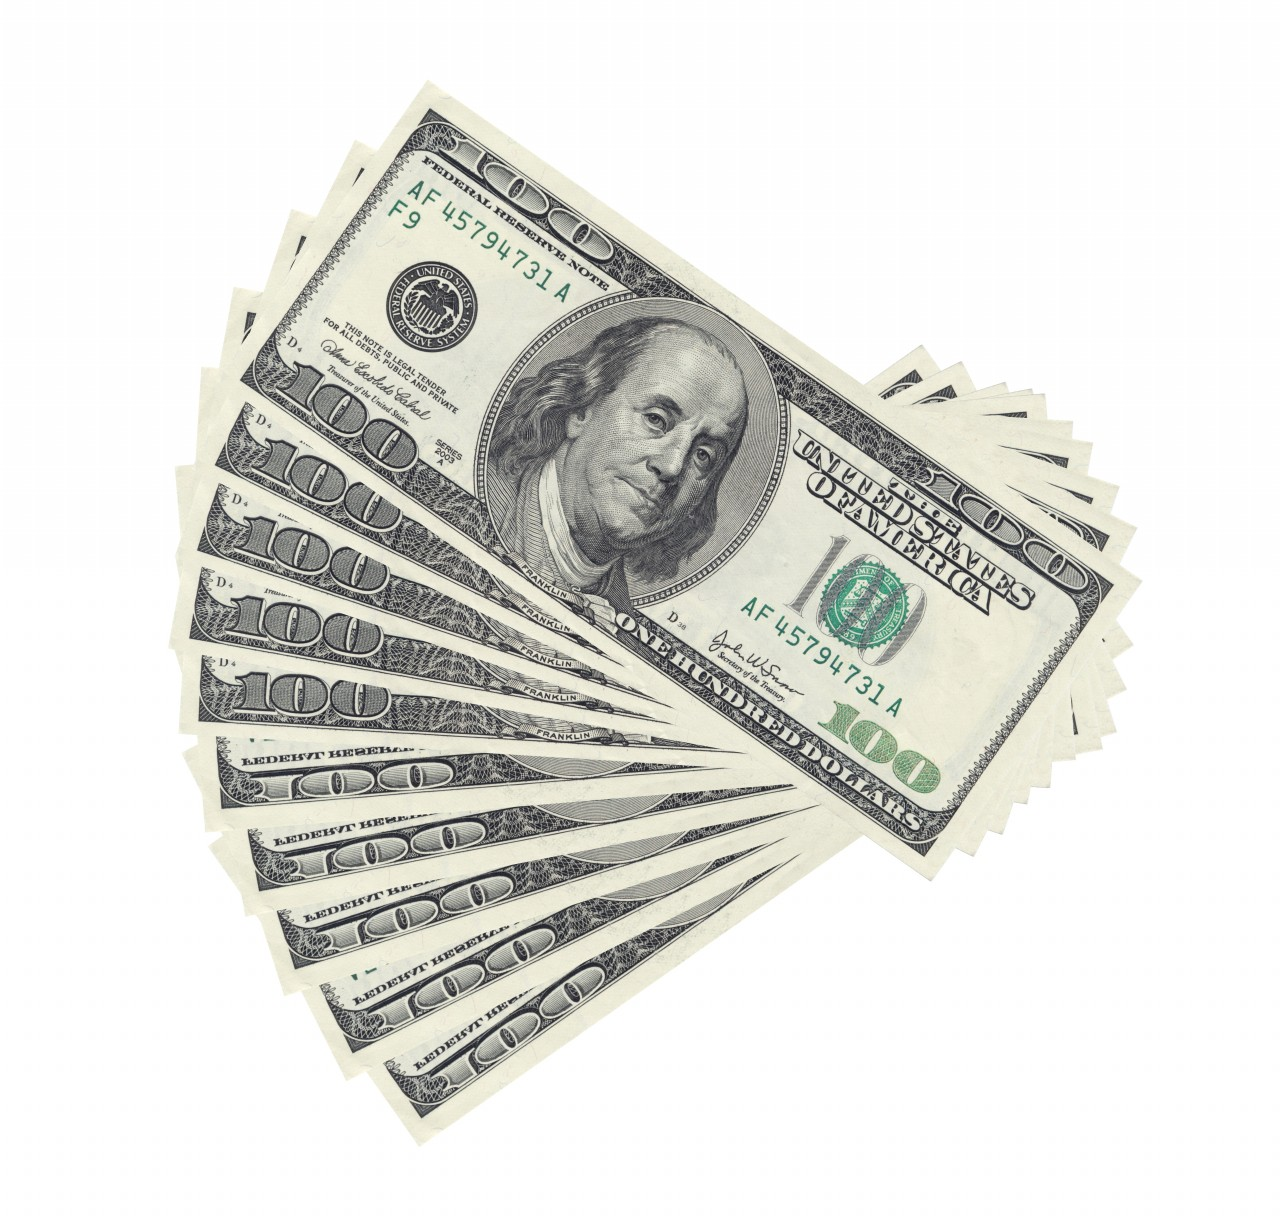 Free 100 Dollar Bill Png, Download Free Clip Art, Free Clip.